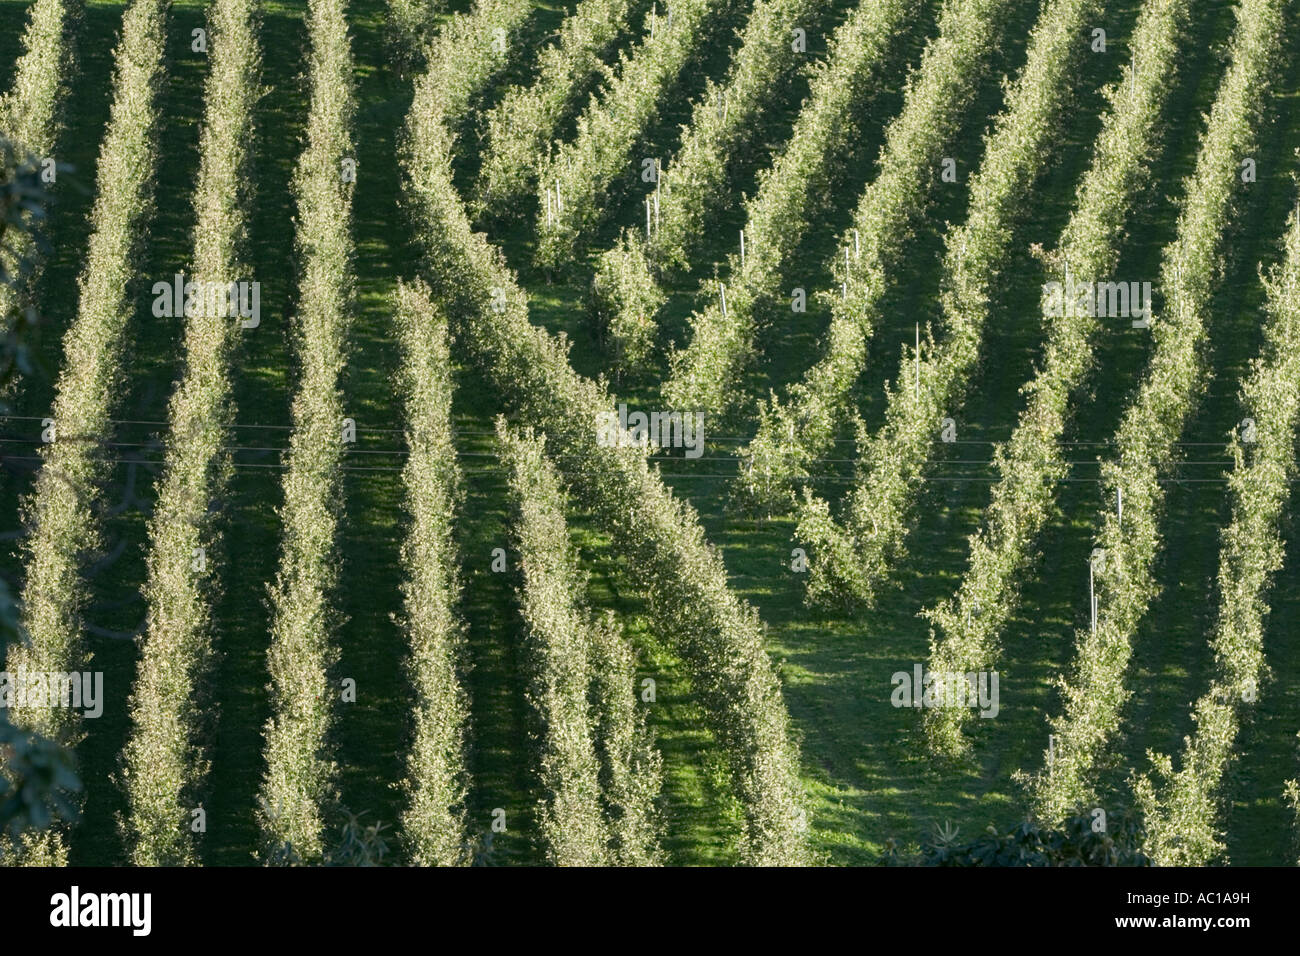 Rows of Vinschgau apple trees, South Tyrol, Italy Stock Photo